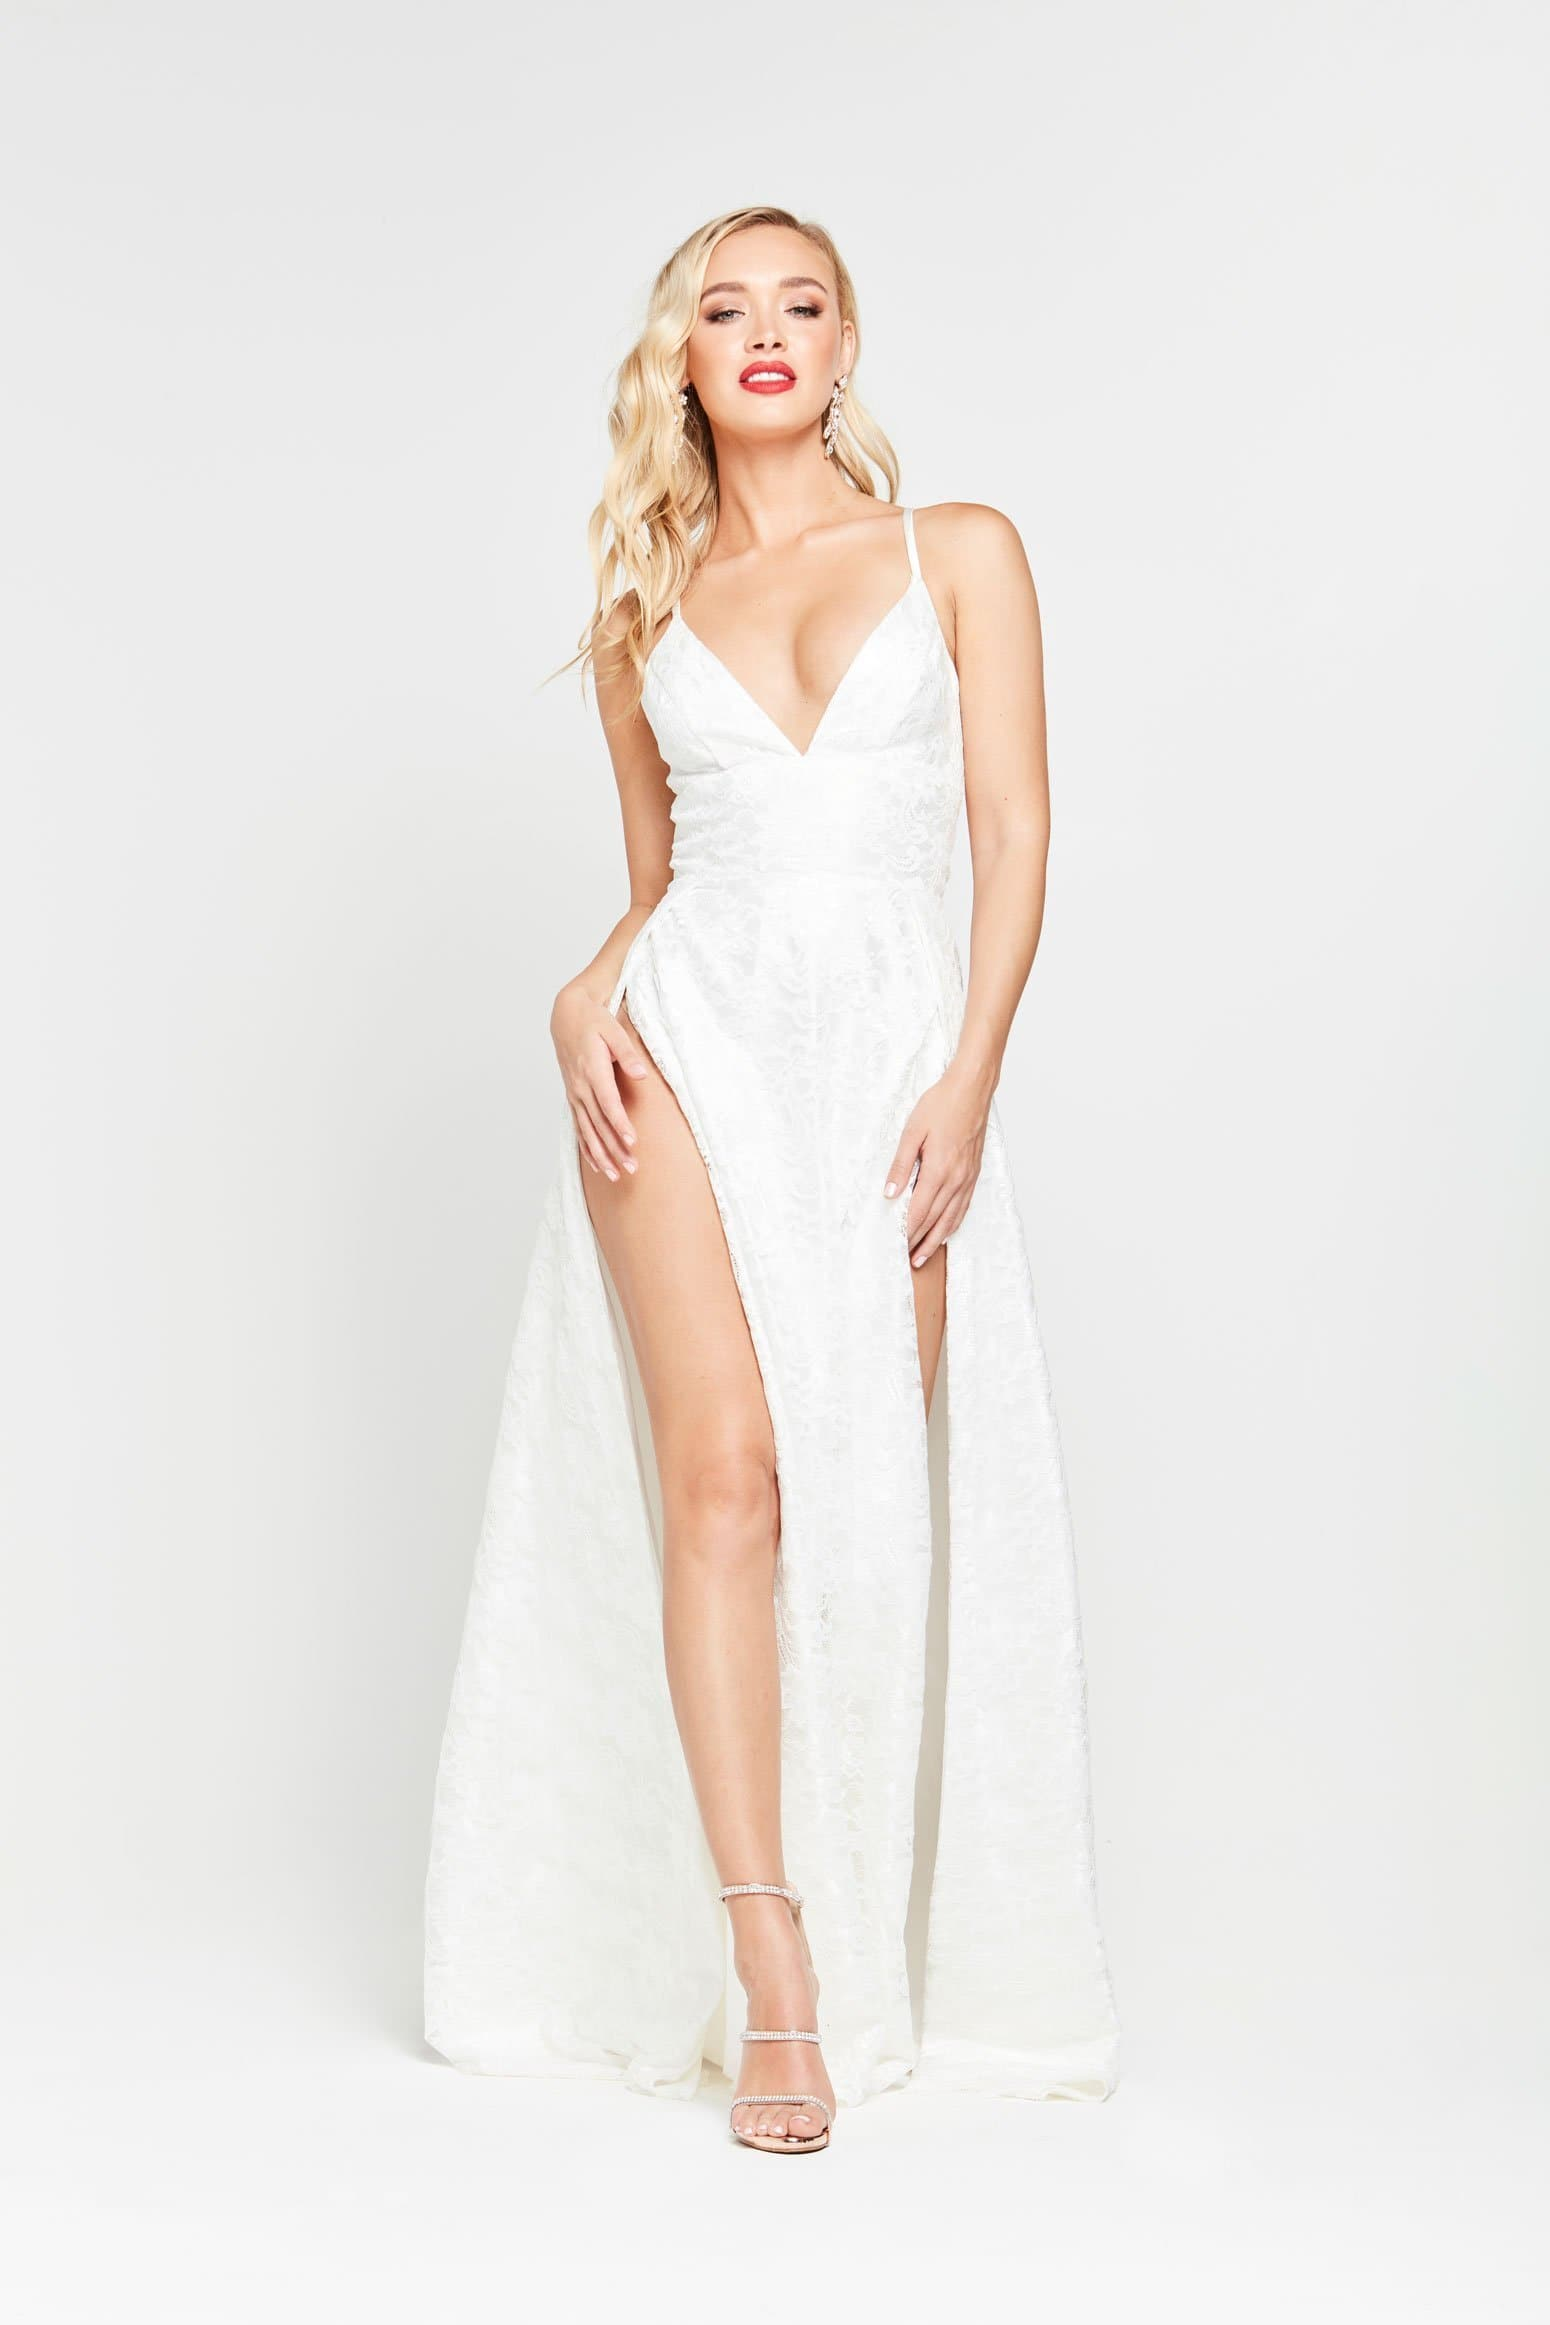 Sofia Formal Gown - White Lace V Neck Two Splits Flare Dress